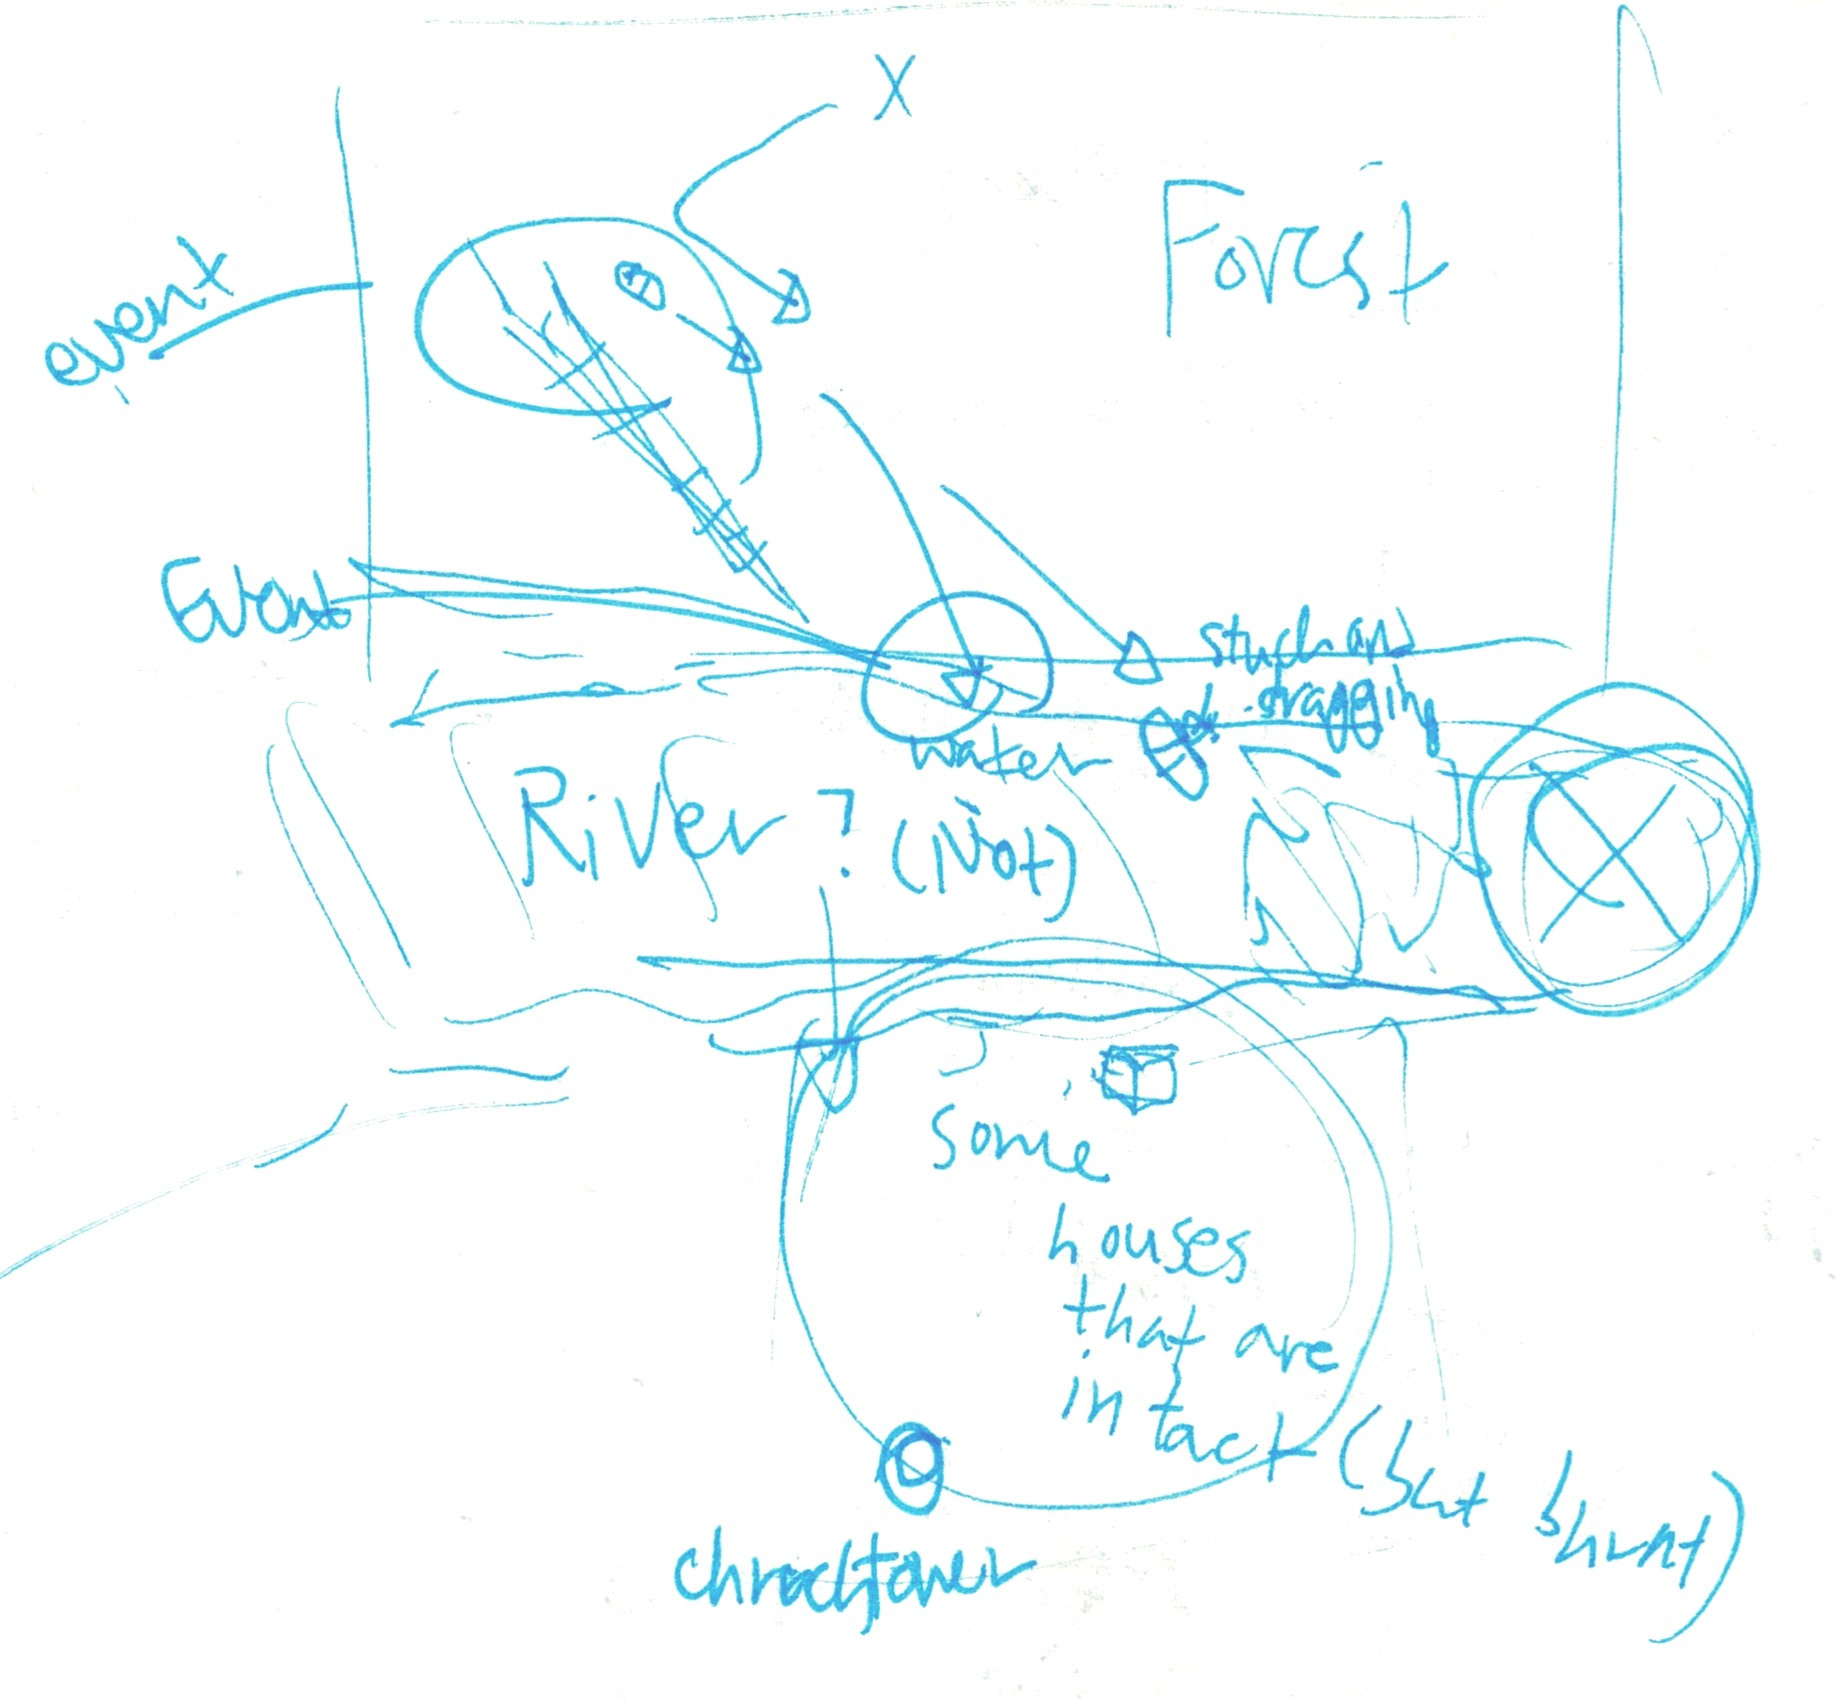 Rough map layout